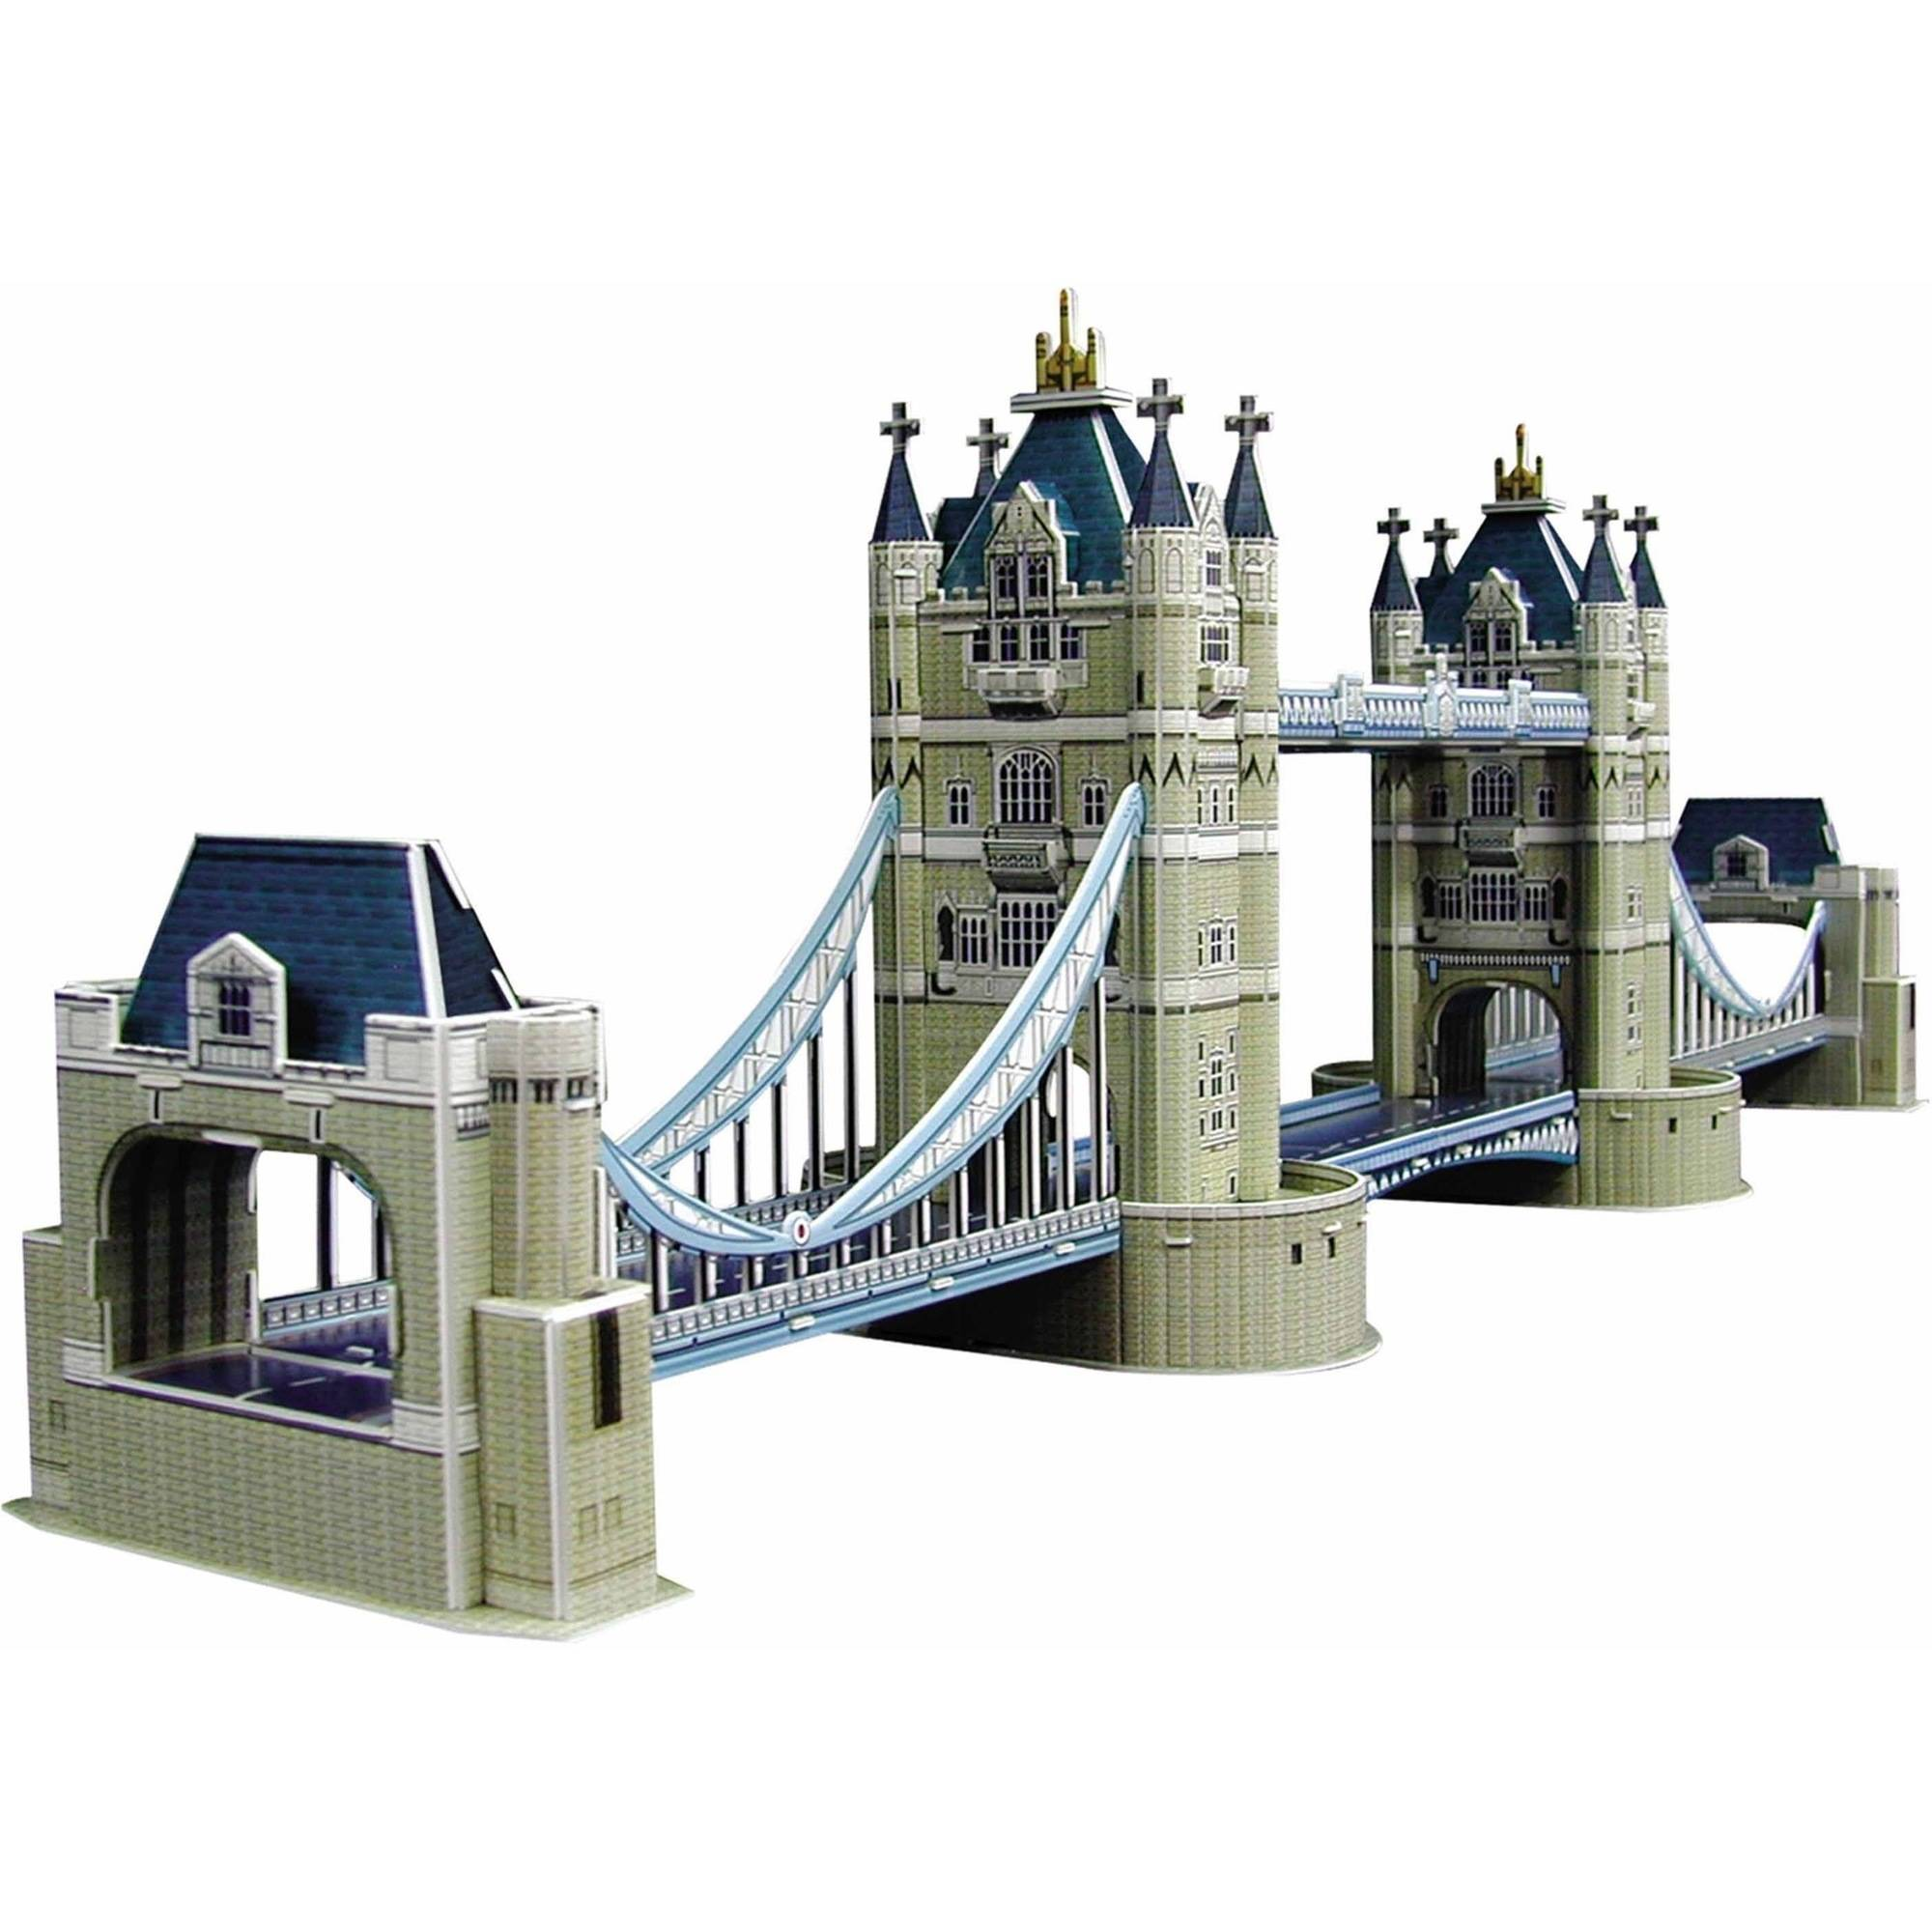 Tower Bridge 3D Puzzle, 112 Pieces by HSI